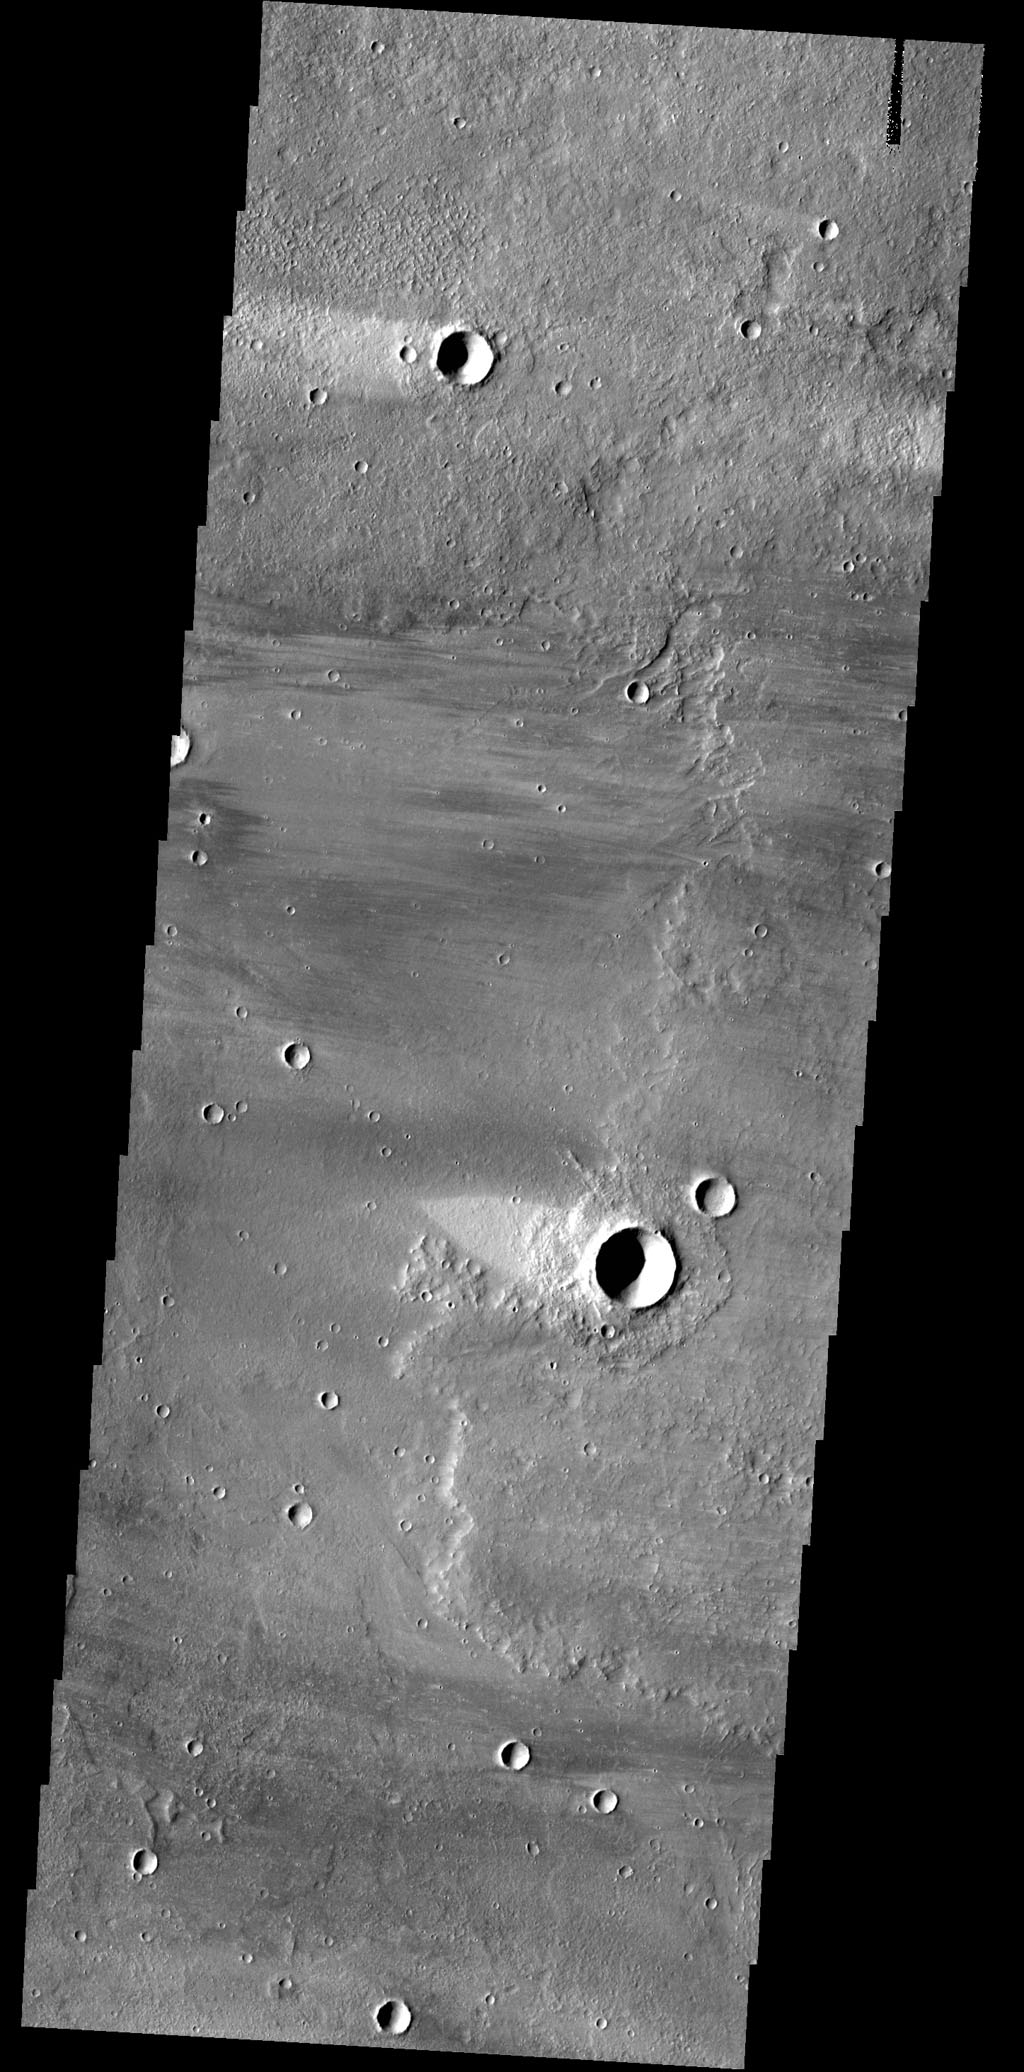 This image captured by NASA's 2001 Mars Odyssey spacecraft shows windstreaks on the volcanic surface between Alba Mons and Acheron Fossae.